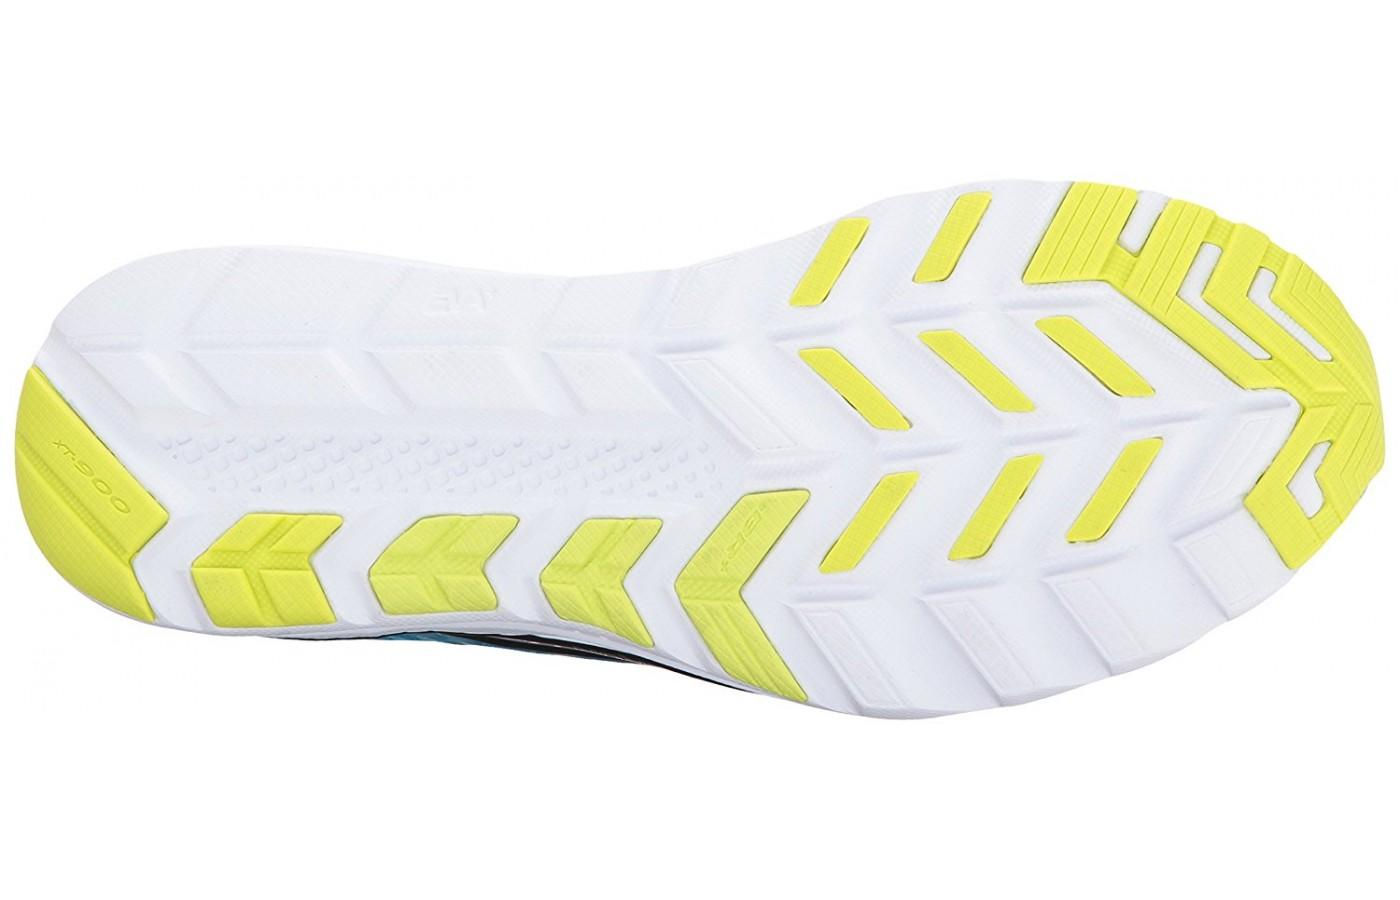 The iBR+ blown rubber outsole of the Saucony Kinvara 8 is one of its biggest improvements.